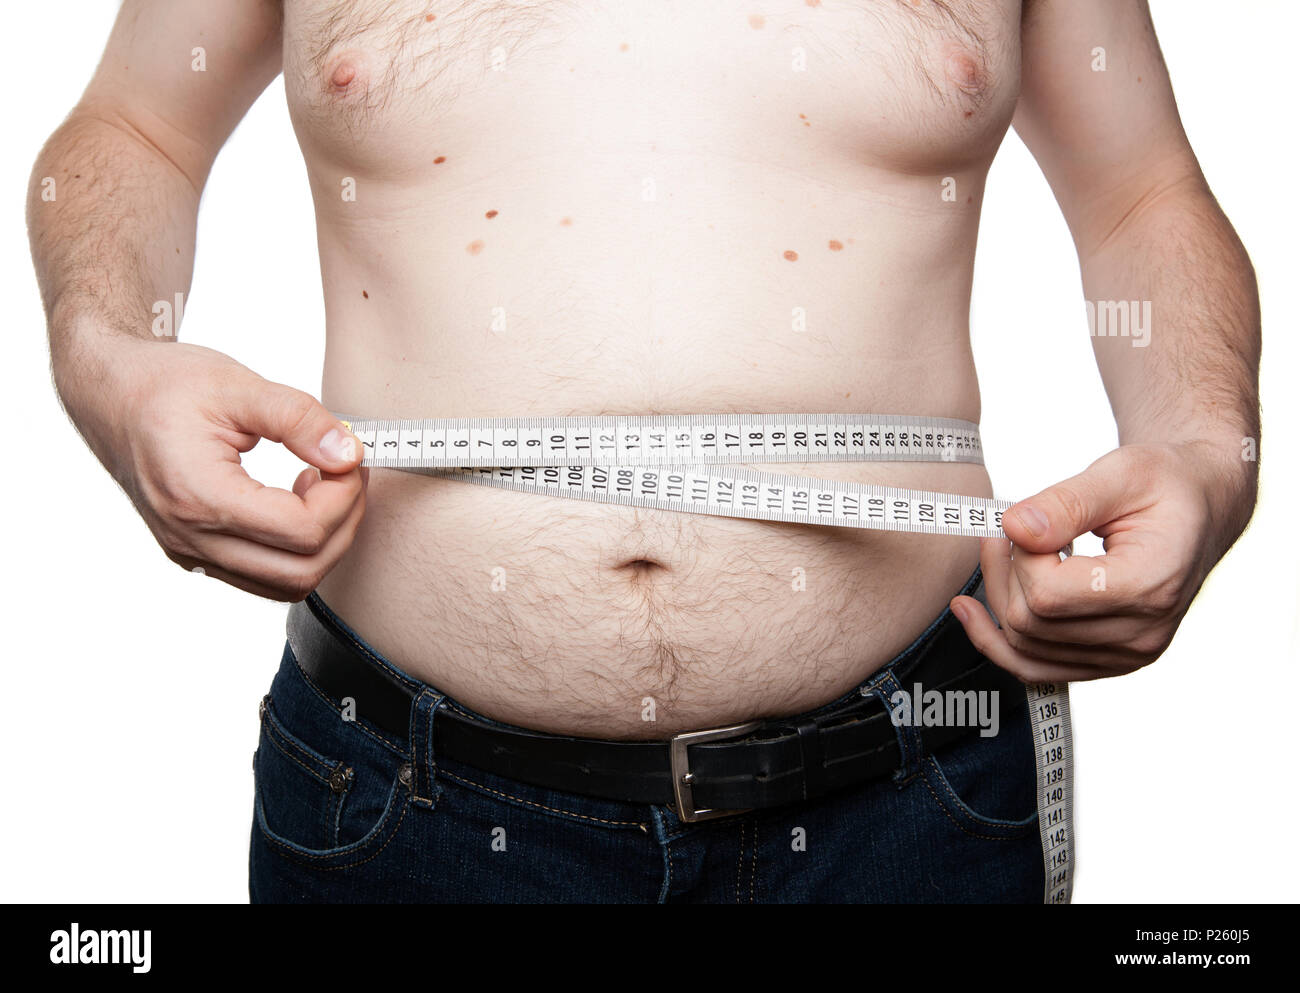 Man With Abdominal Fat Stock Photos & Man With Abdominal Fat Stock ...